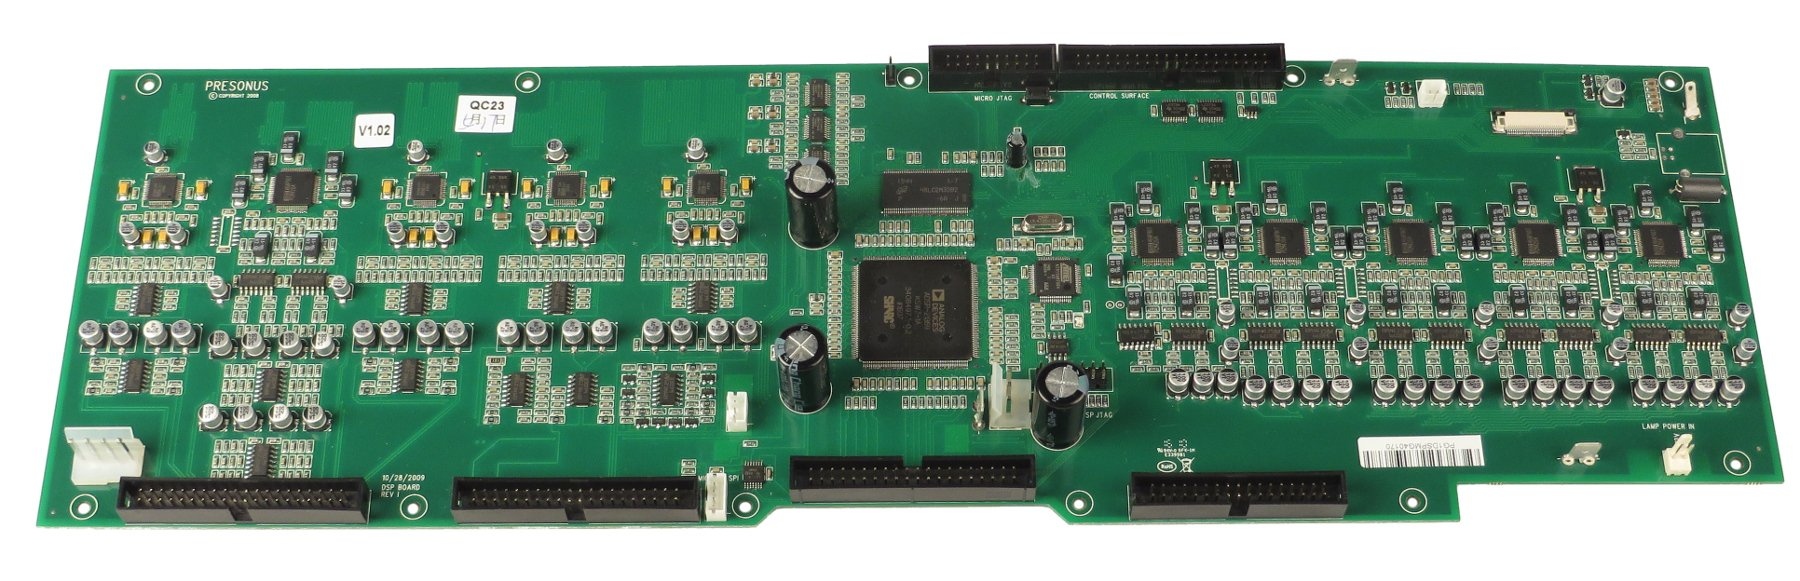 DSP PCB Assembly for StudioLive 16.4.2